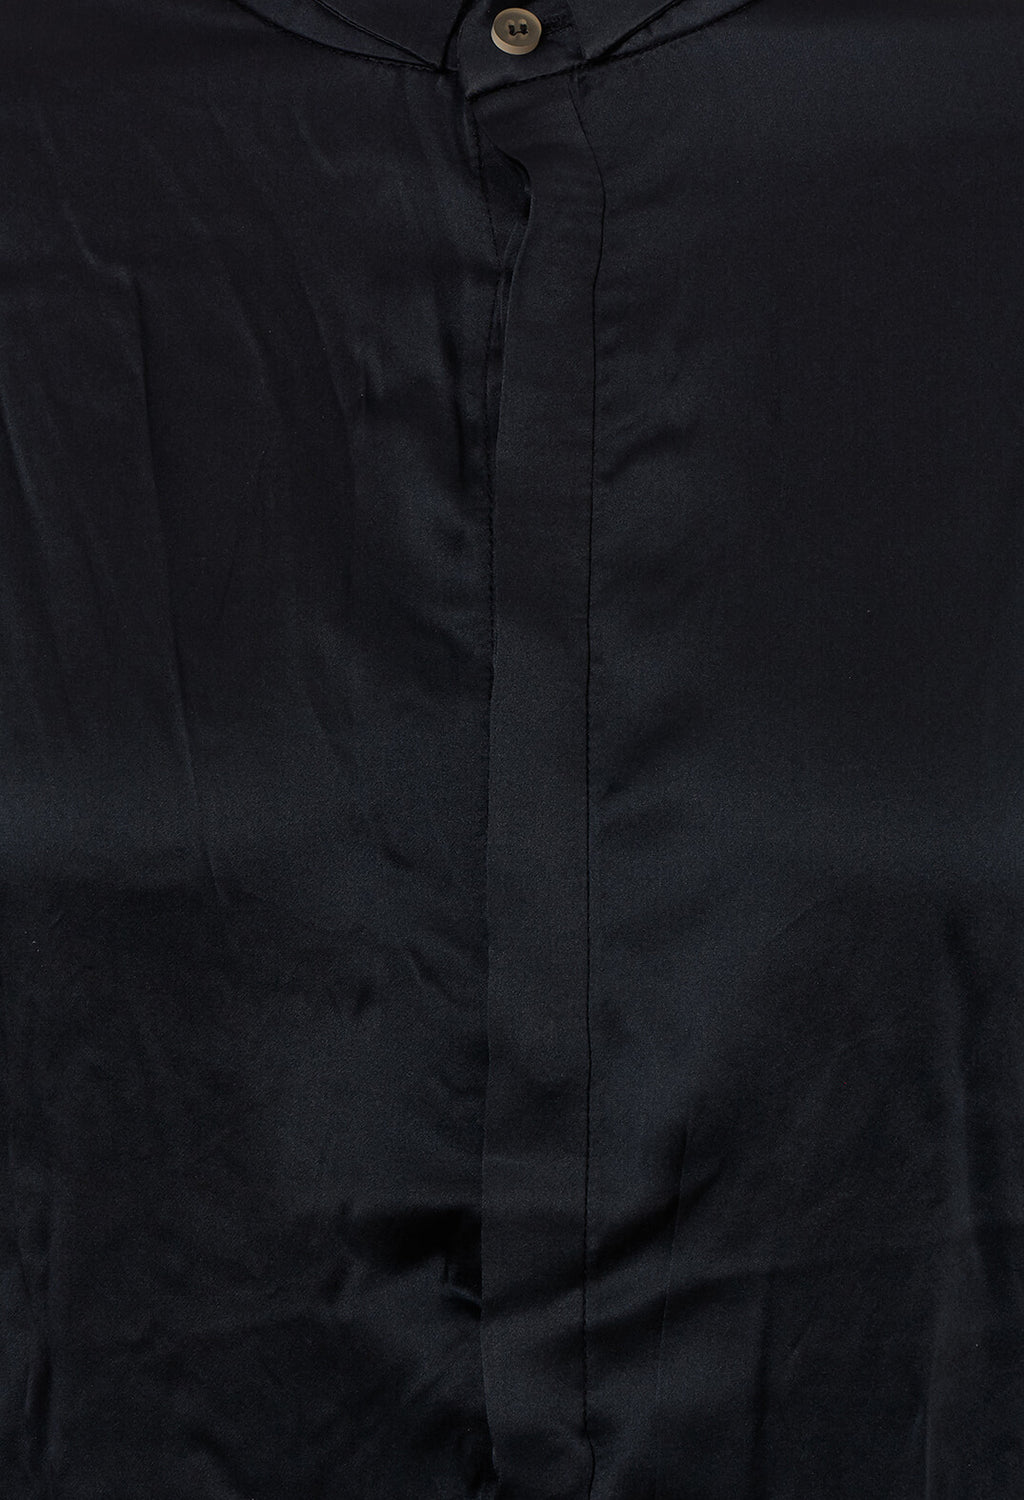 Silk Shirt in Dark Navy Longer